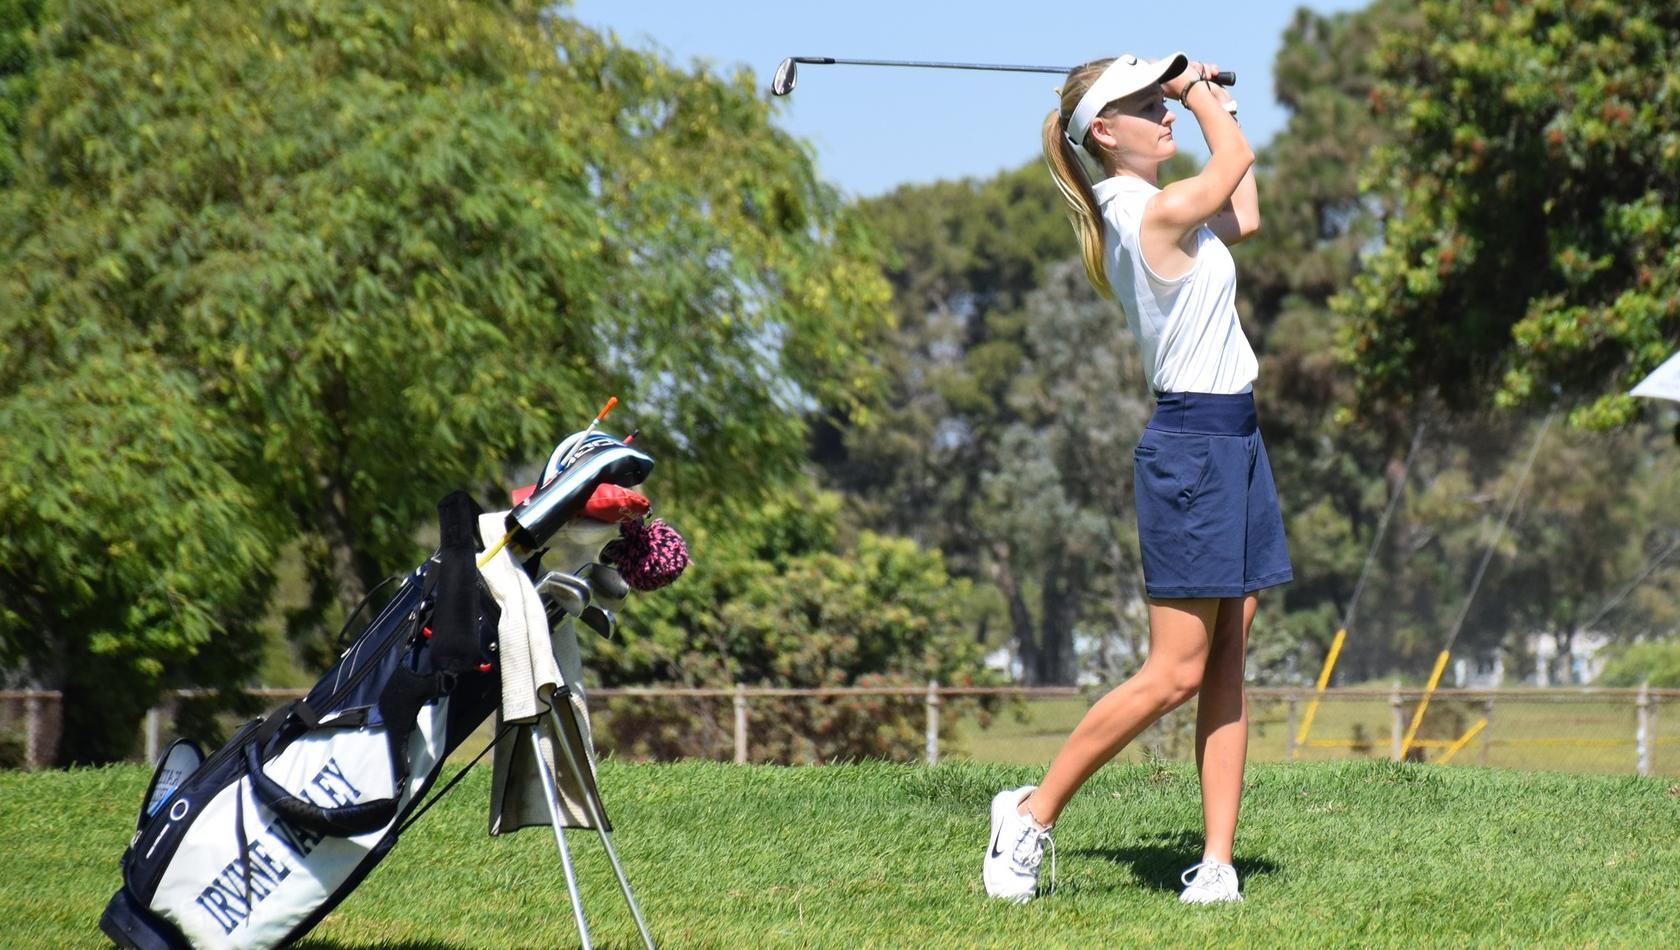 Golfer Katie Stribling cards 76, leads OEC Champs after day one